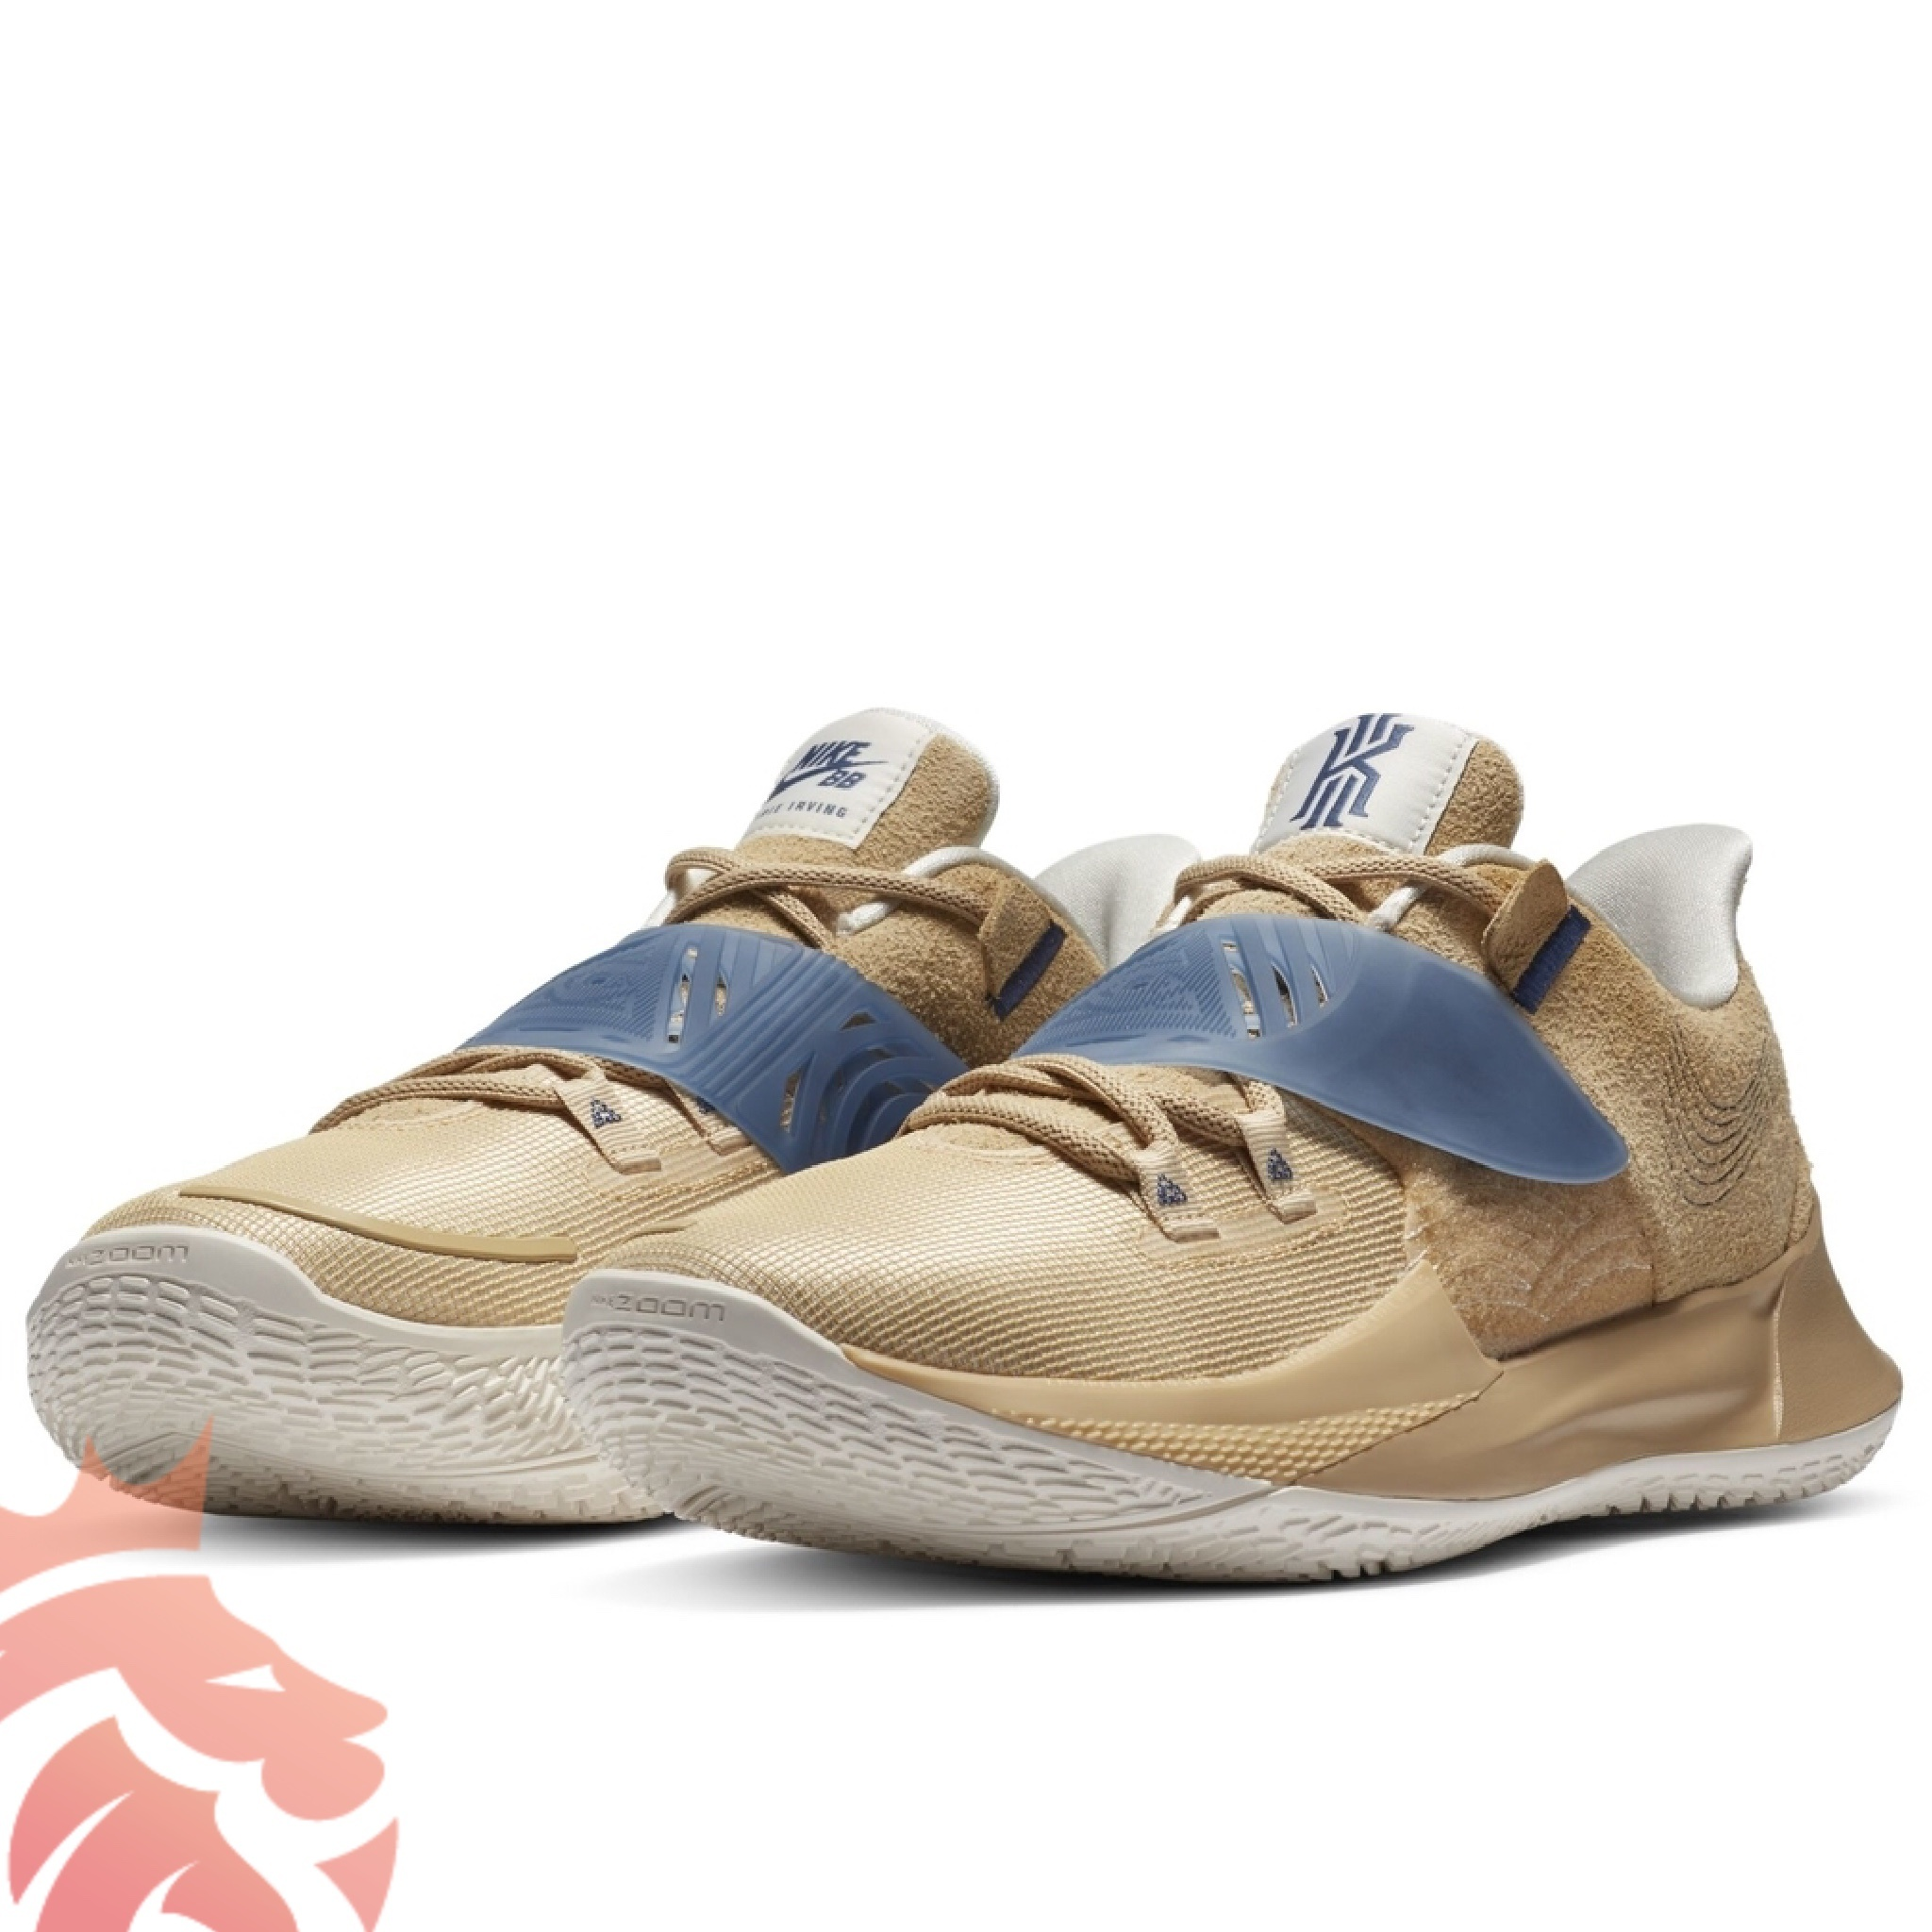 Nike Kyrie Low 3 EP CT0715-200 Sesame/Mystic Navy-Sail-Gum Light Brown